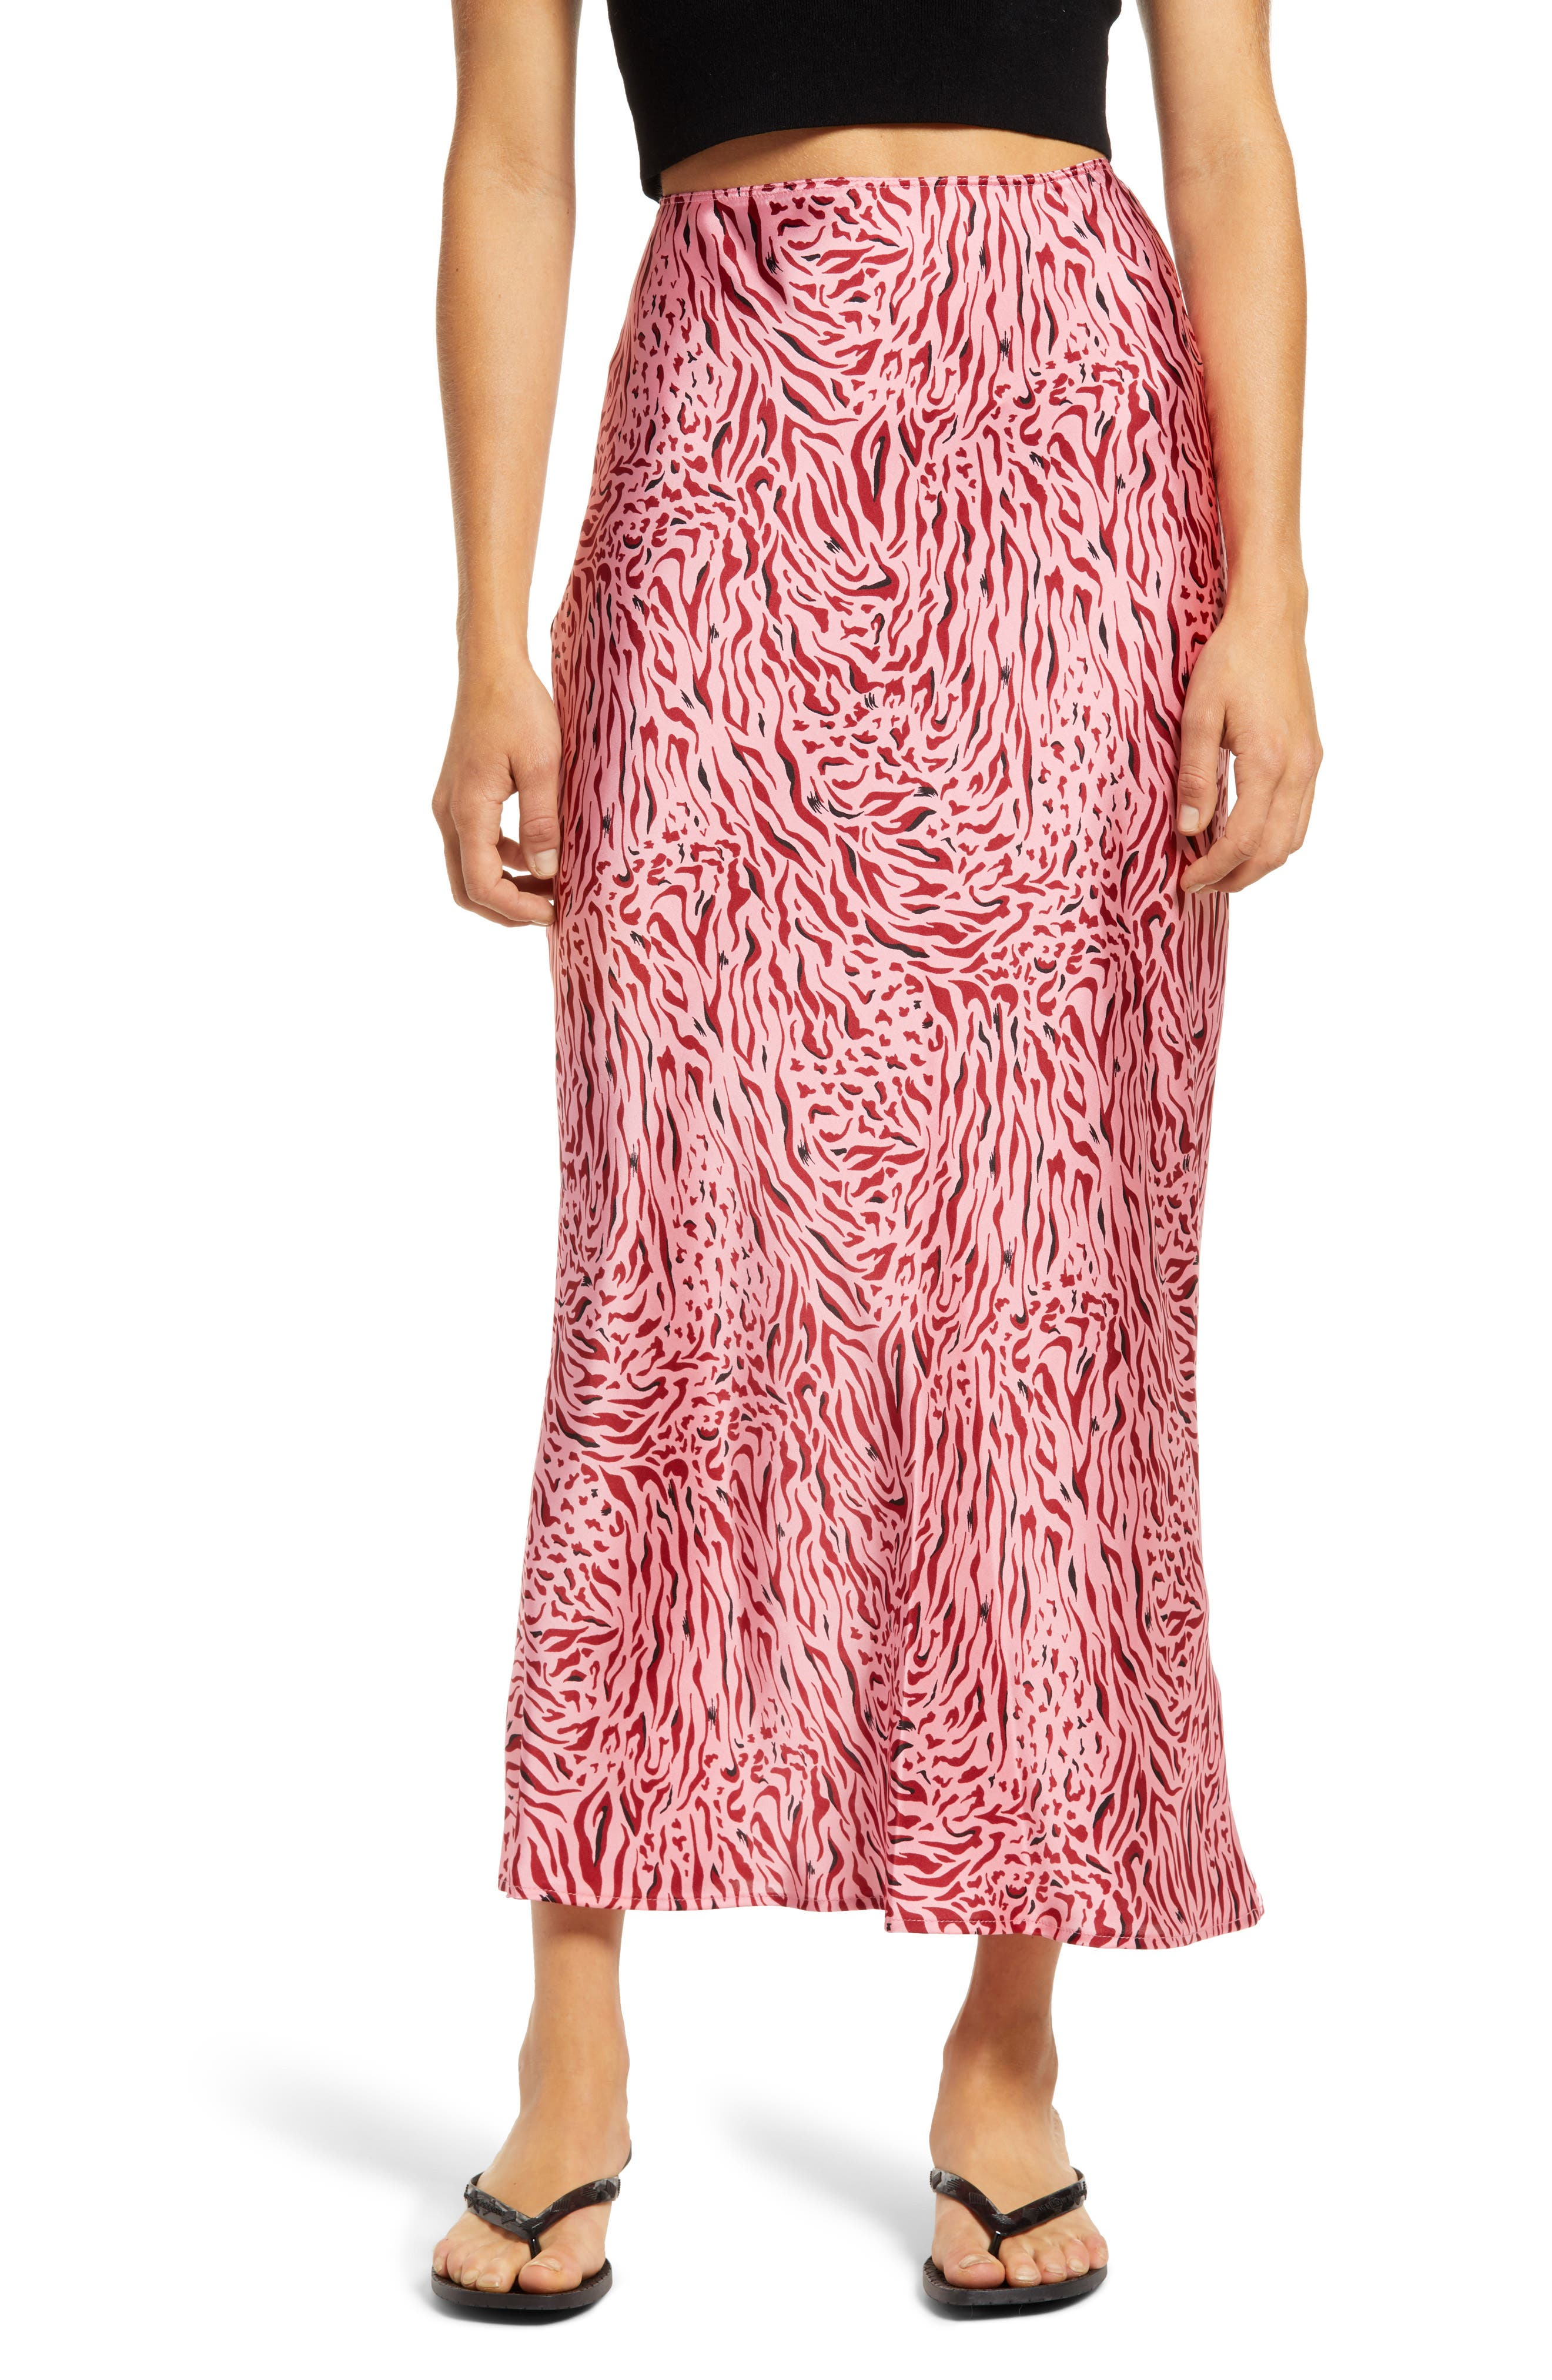 Vibrant zebra stripes embolden a slinky bias-cut skirt that\\\'s begging for a date night. Style Name: Topshop Zebra Bias Skirt. Style Number: 6106215. Available in stores.